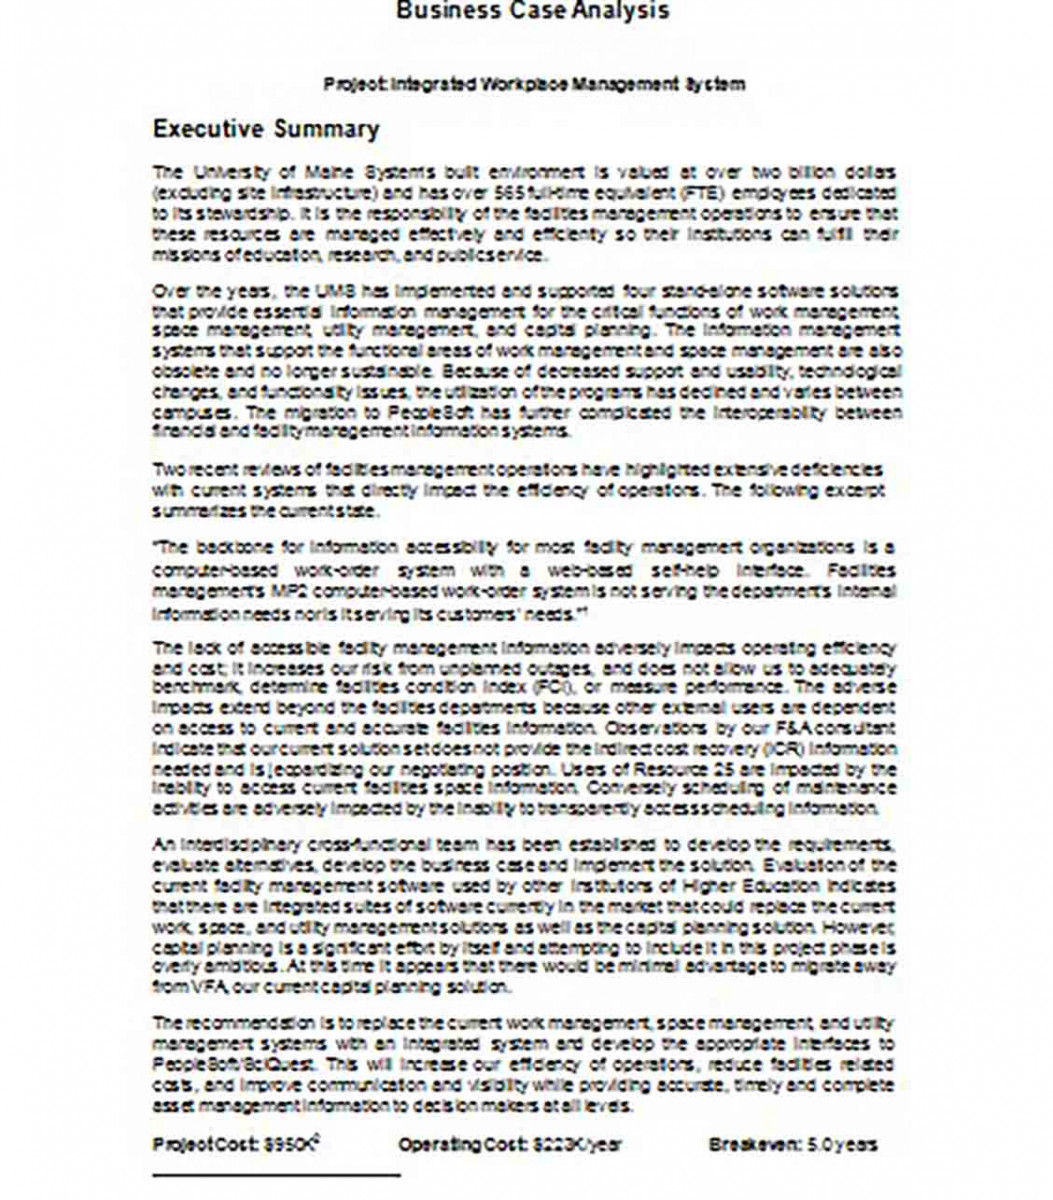 Executive Summary Business Case Sample.